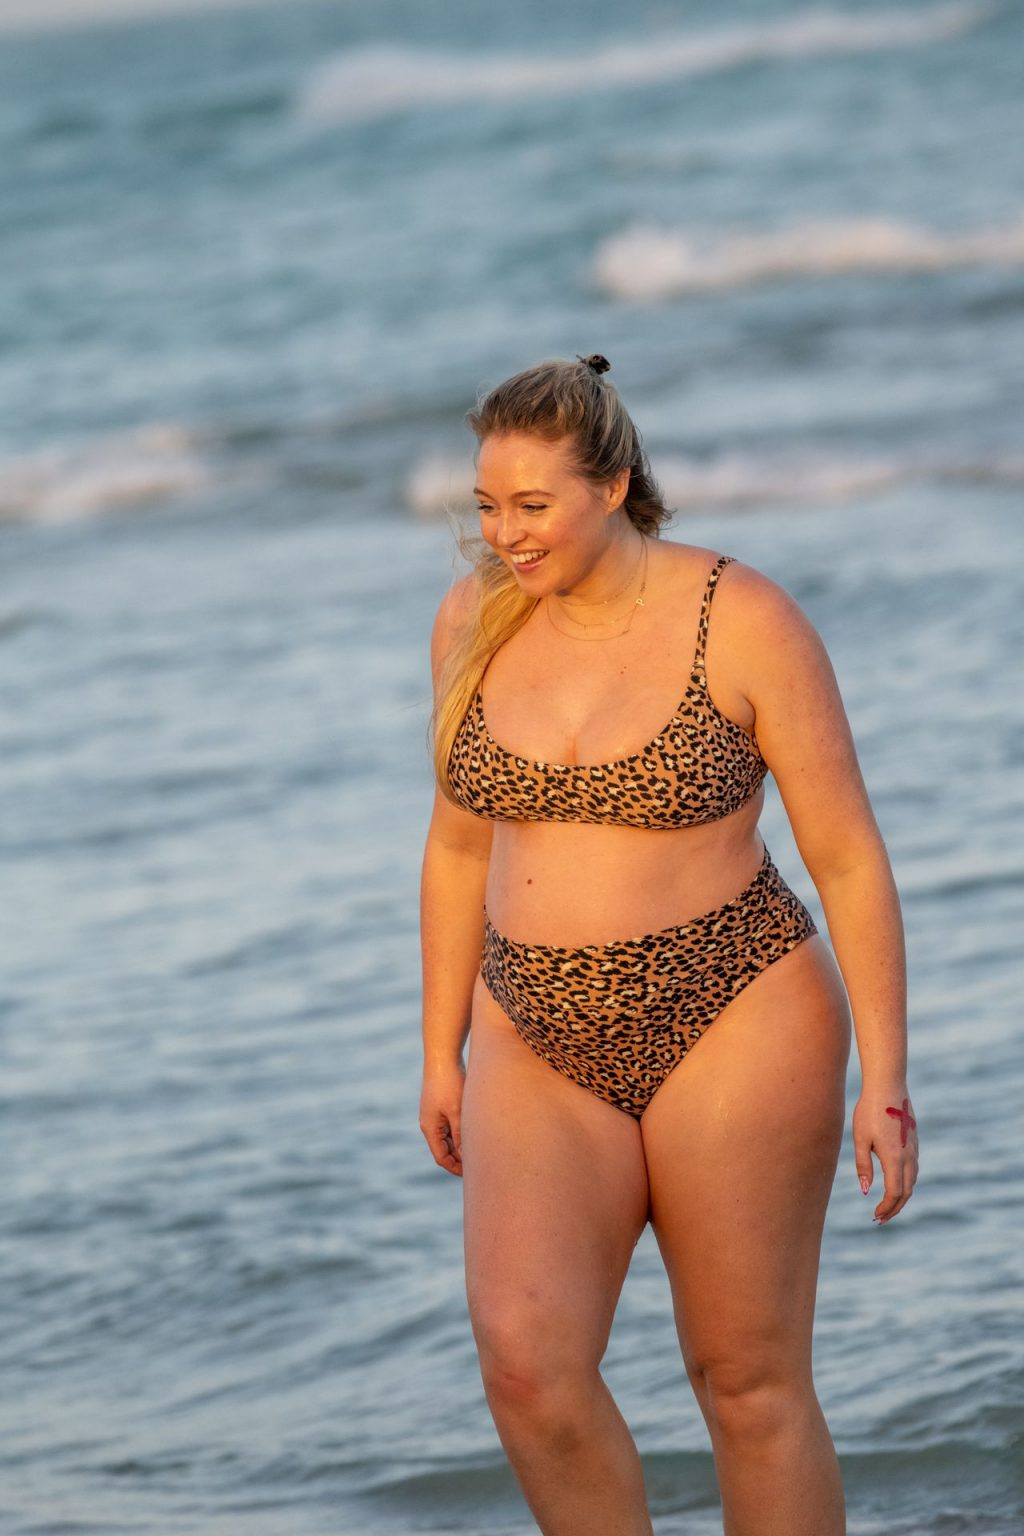 Iskra Lawrence Sexy The Fappening Blog 24 1024x1536 - Heavily Pregnant Model Iskra Lawrence Takes A Sunset Dip In Miami Beach (44 Photos)